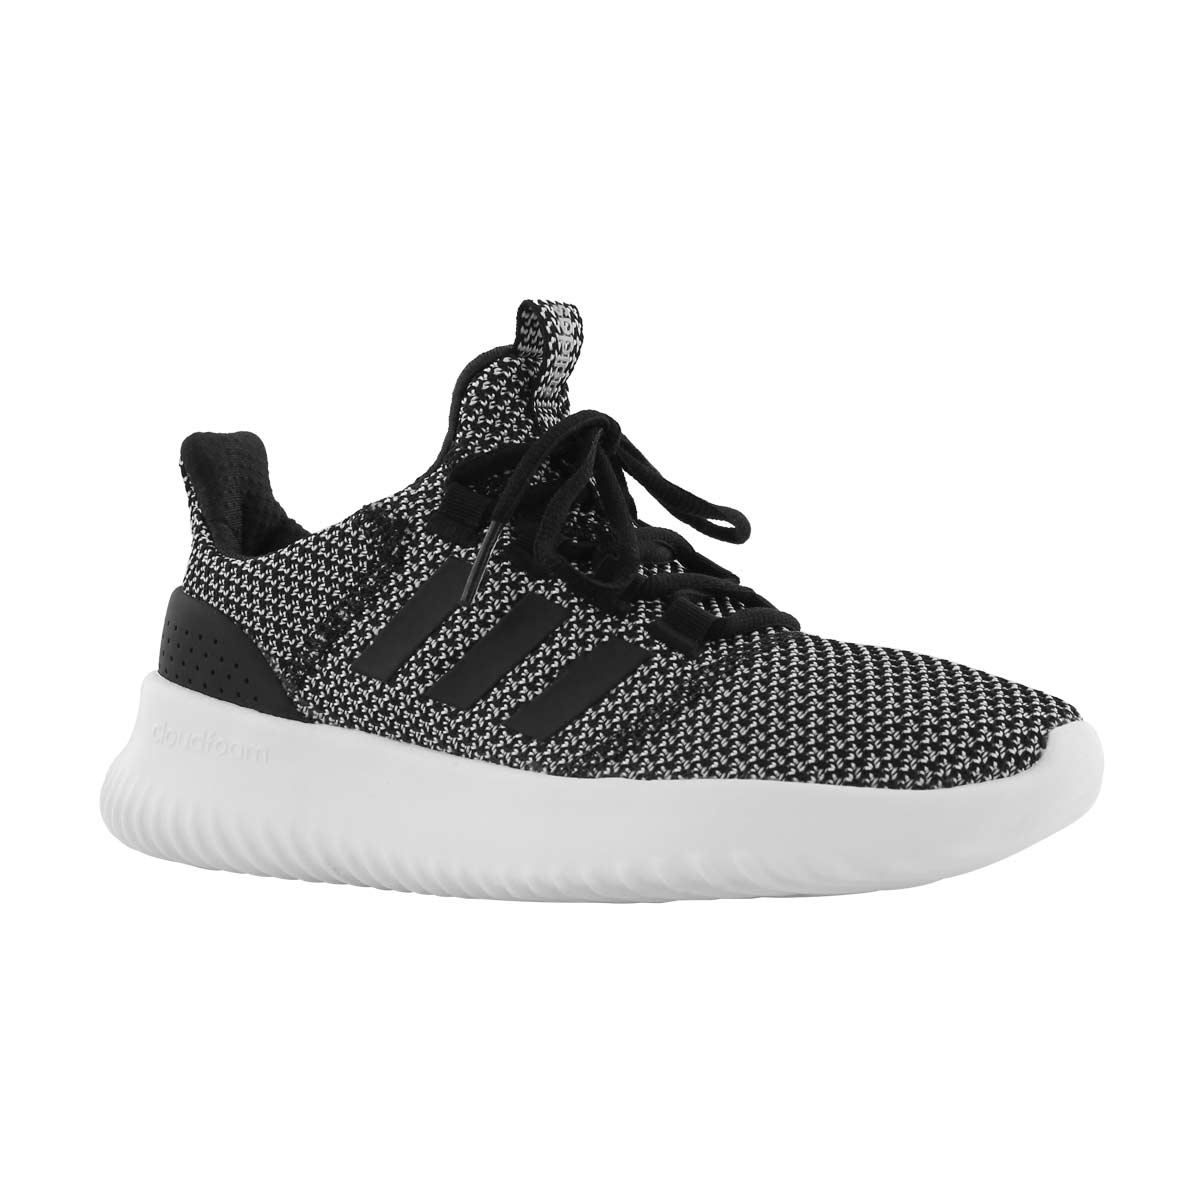 Chlds Cloudfoam Ultimate blk/slv runners